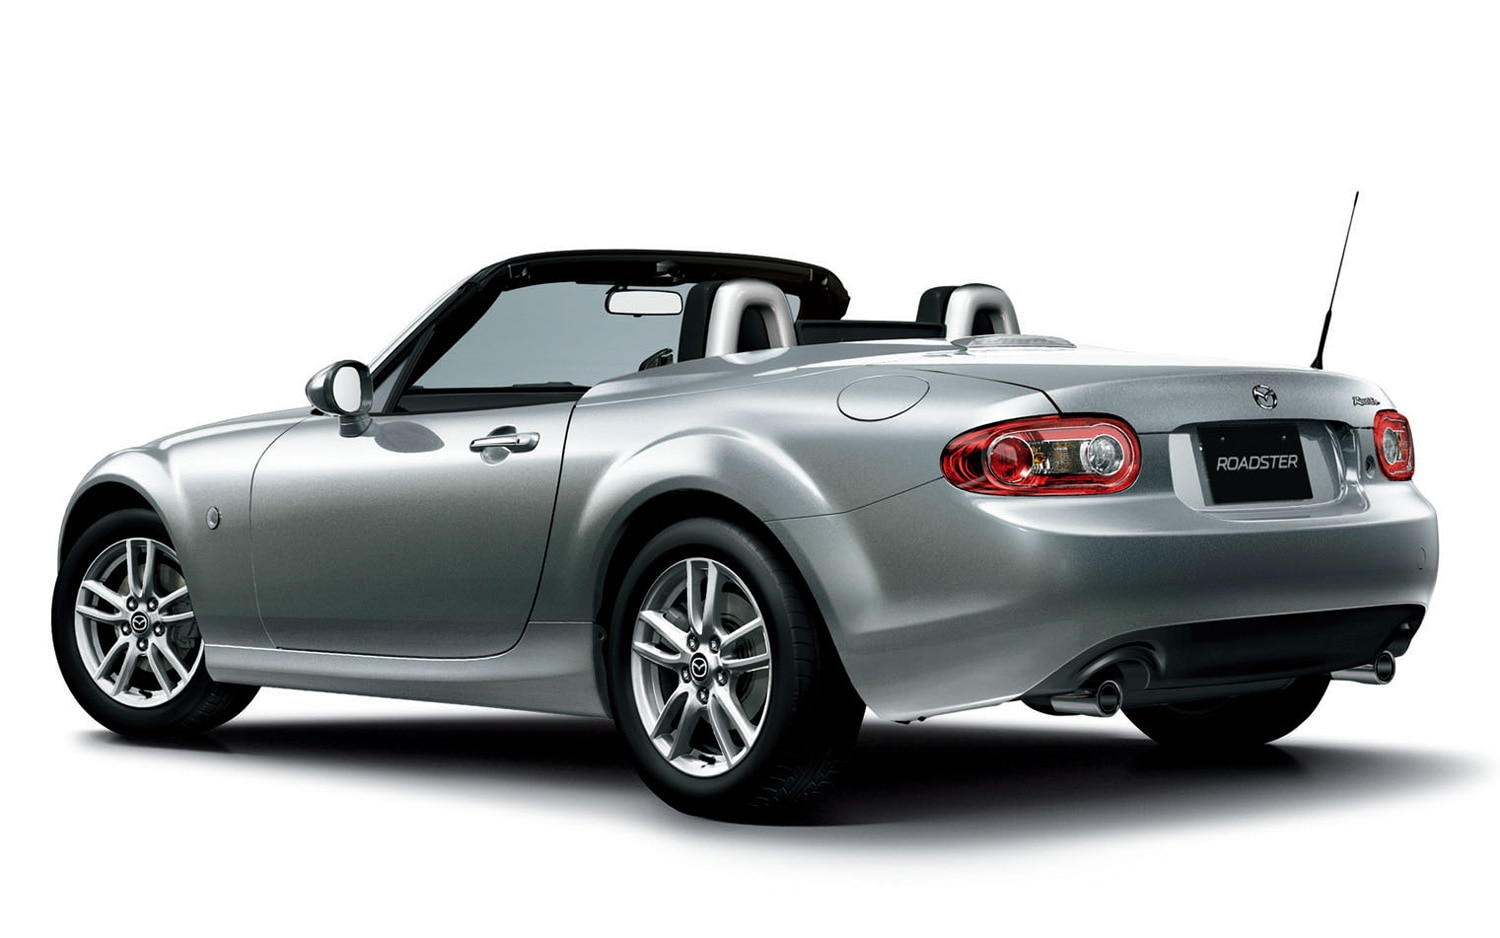 Mazda MX 5 Roadster Rear Angle Top Down1